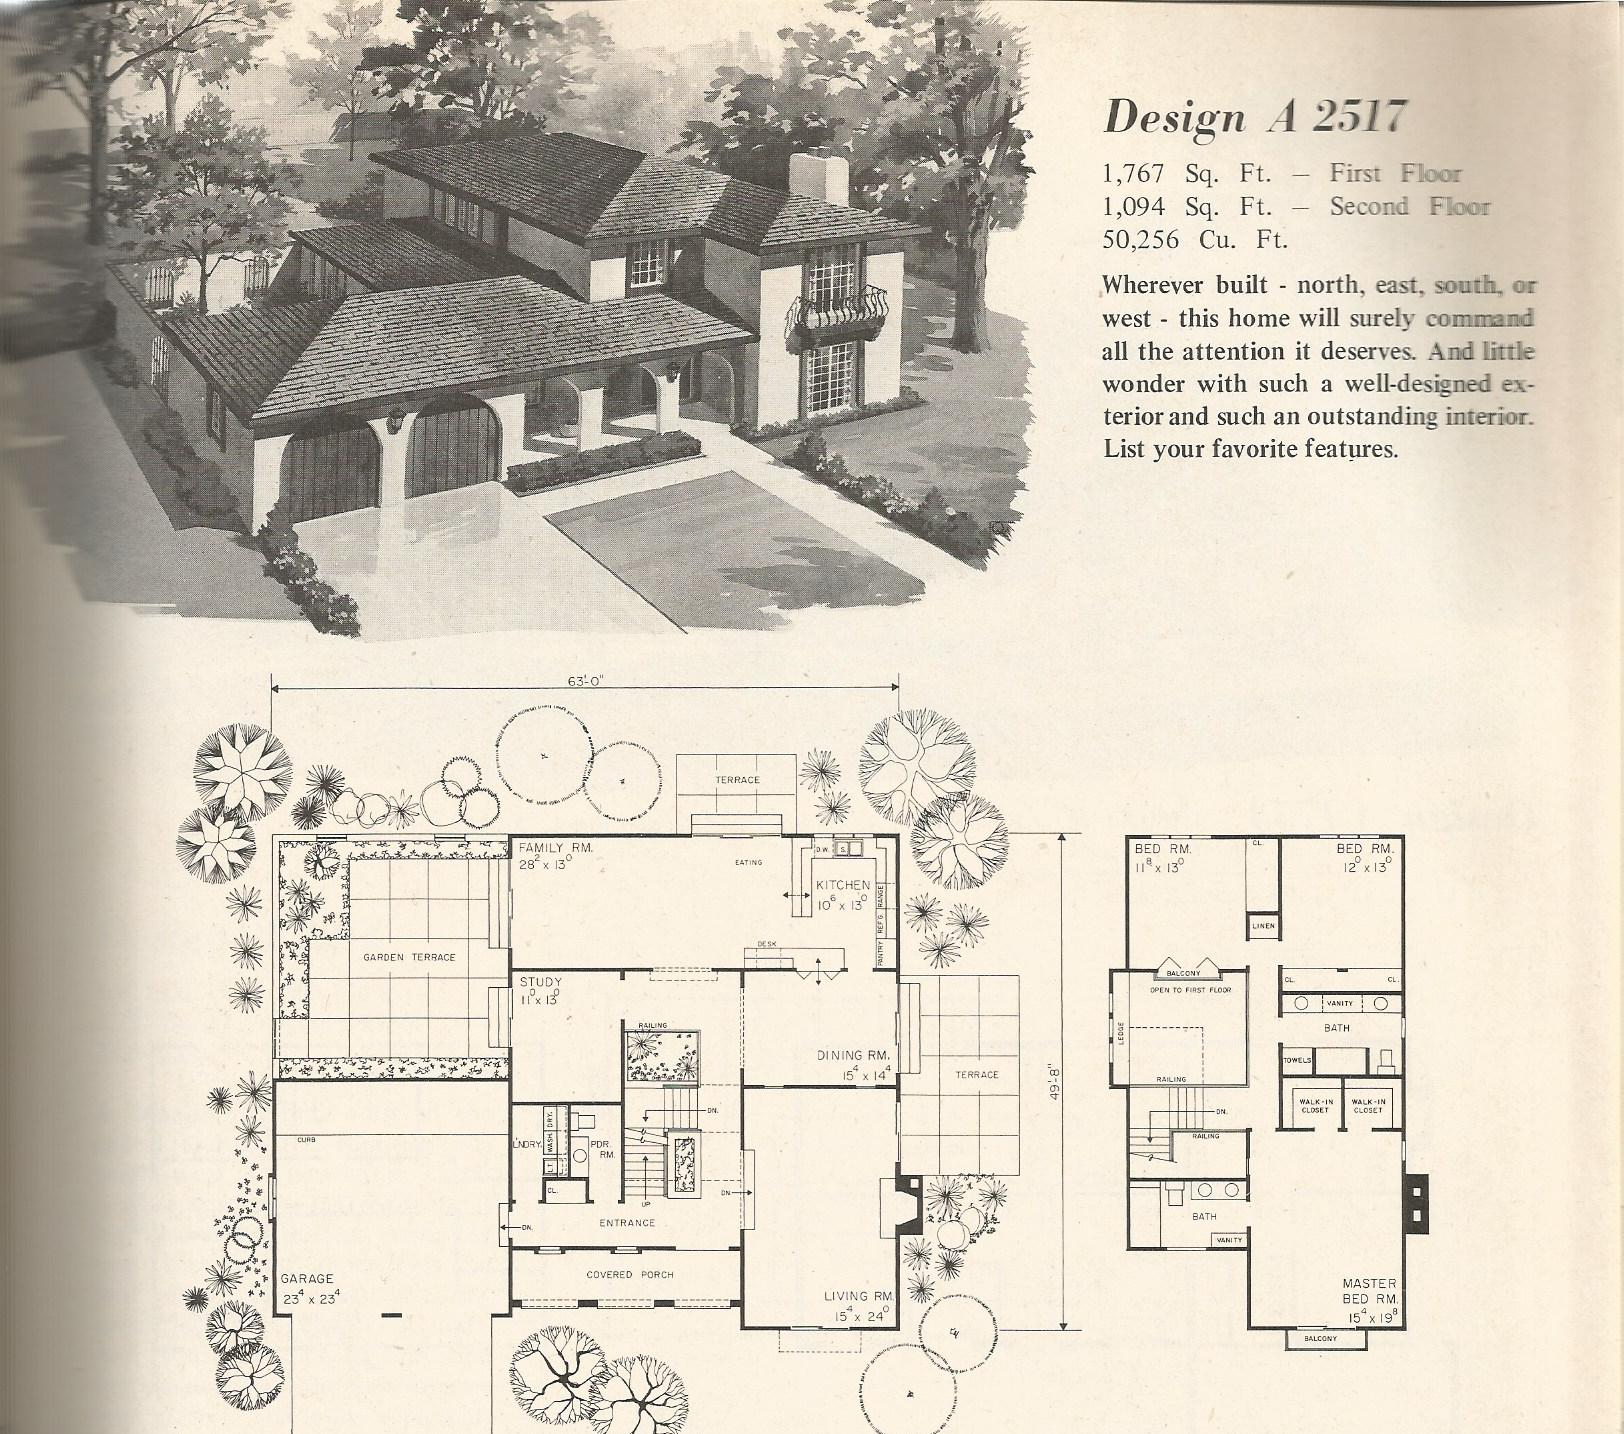 Vintage Home Plans Old West 2517 Great Ideas